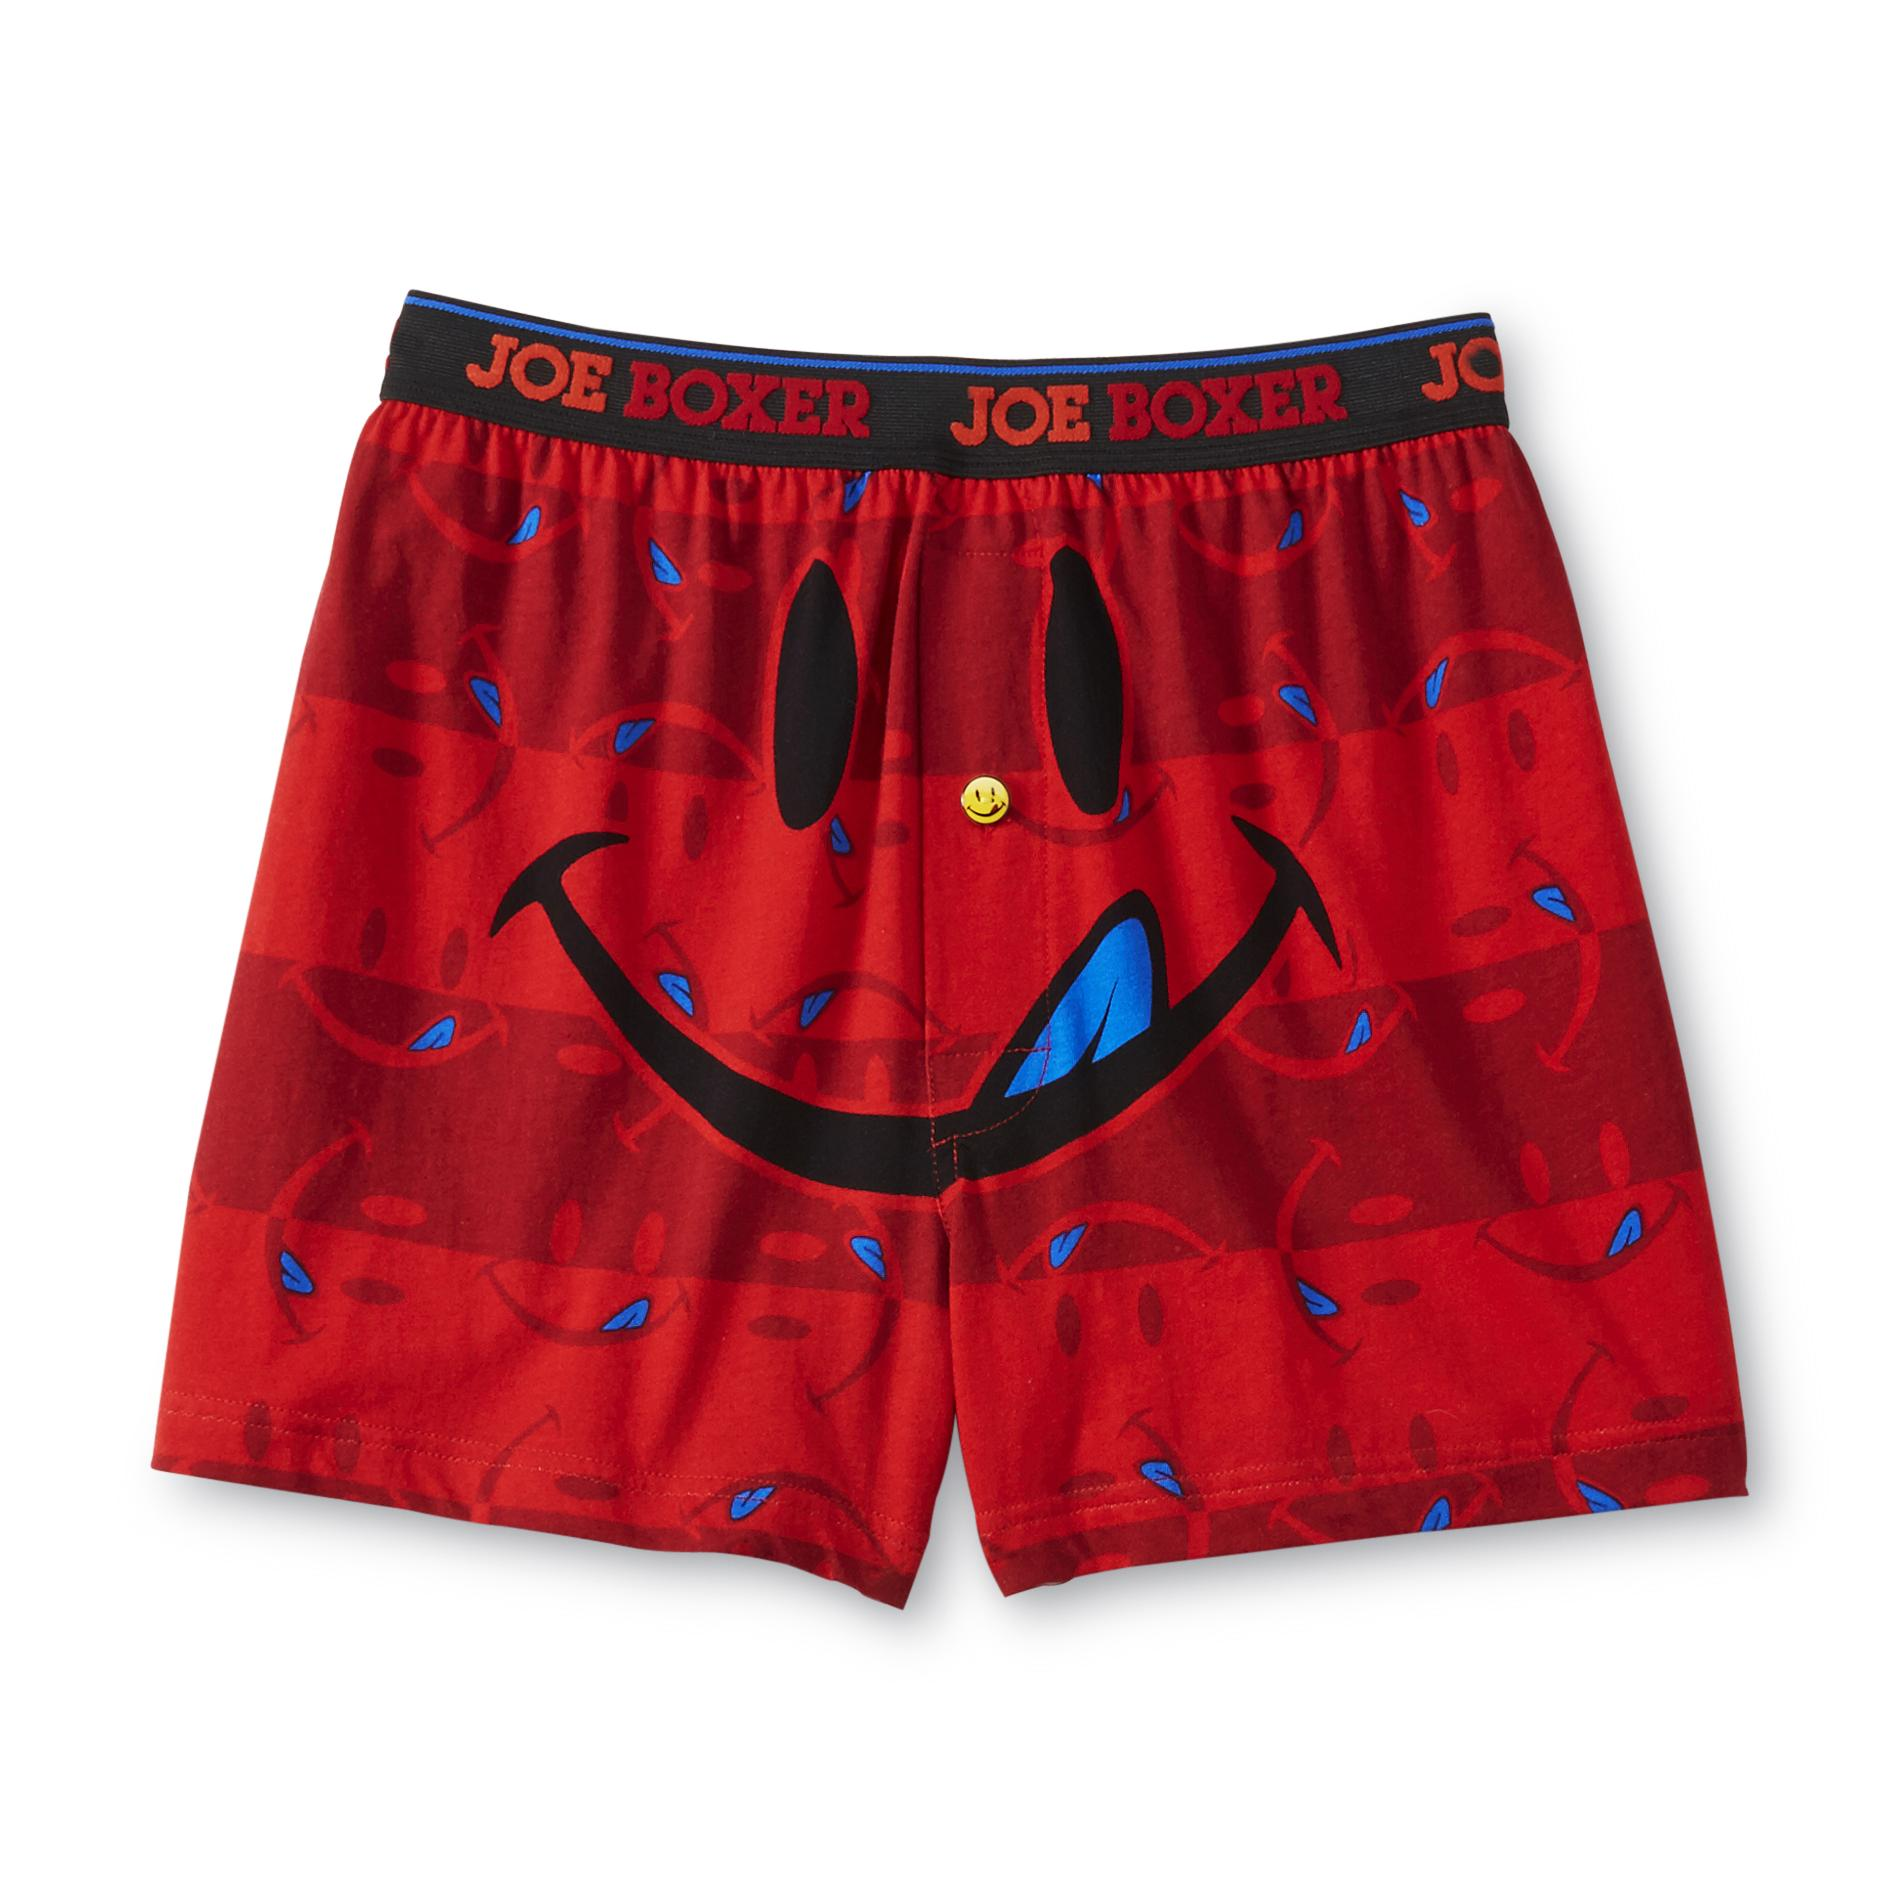 20 Joe Boxer Shorts Pictures And Ideas On Meta Networks